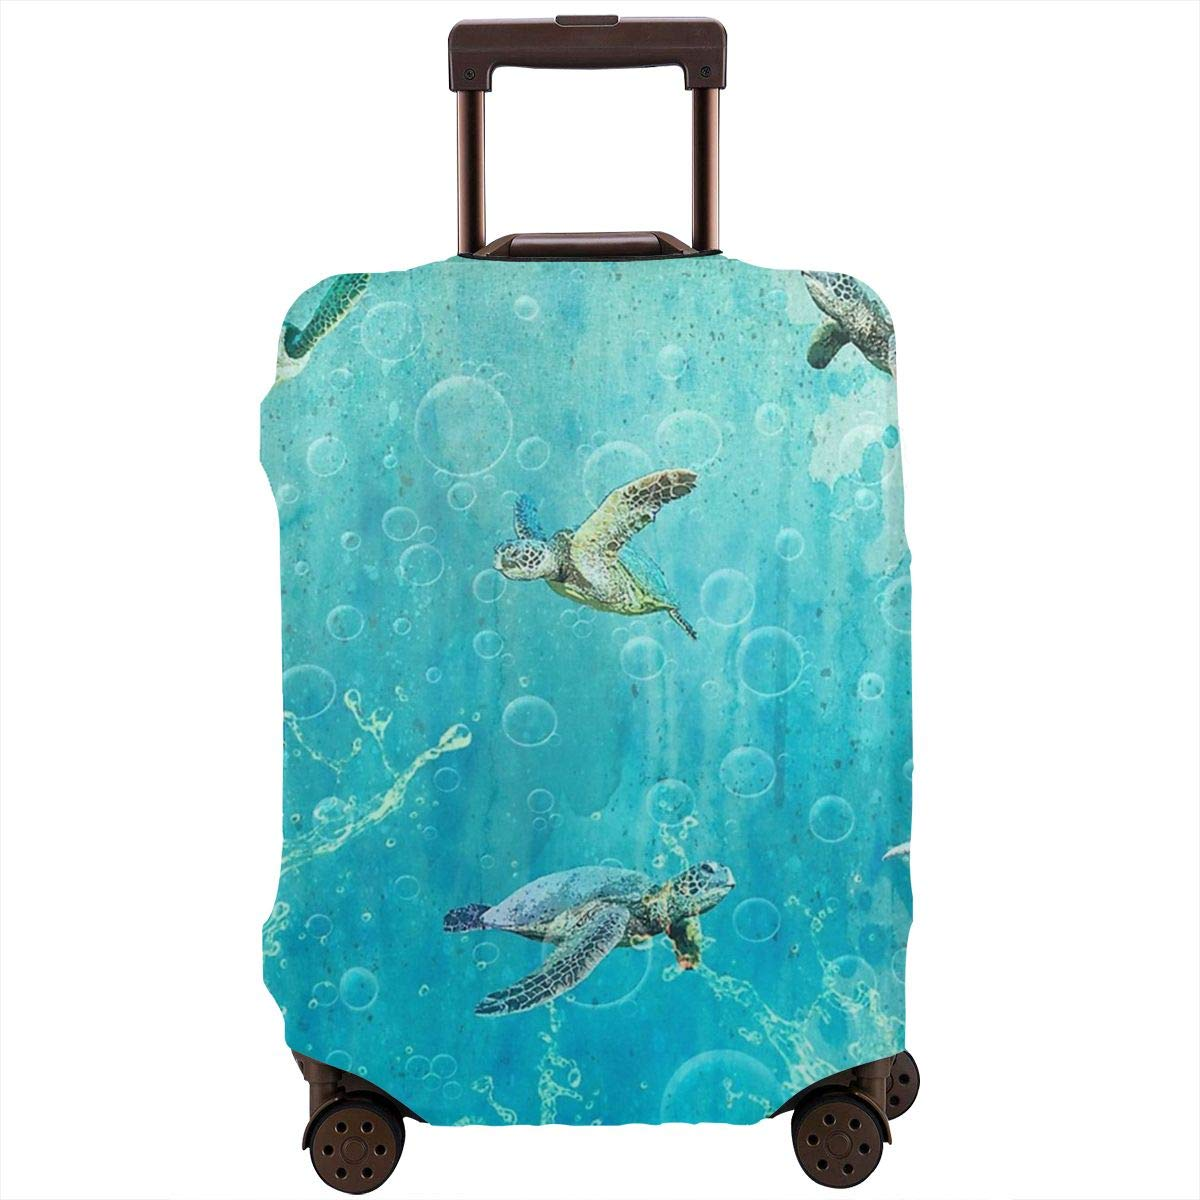 Luggage Cover Swimming Turtles Blowing Bubbles Protective Travel Trunk Case Elastic Luggage Suitcase Protector Cover